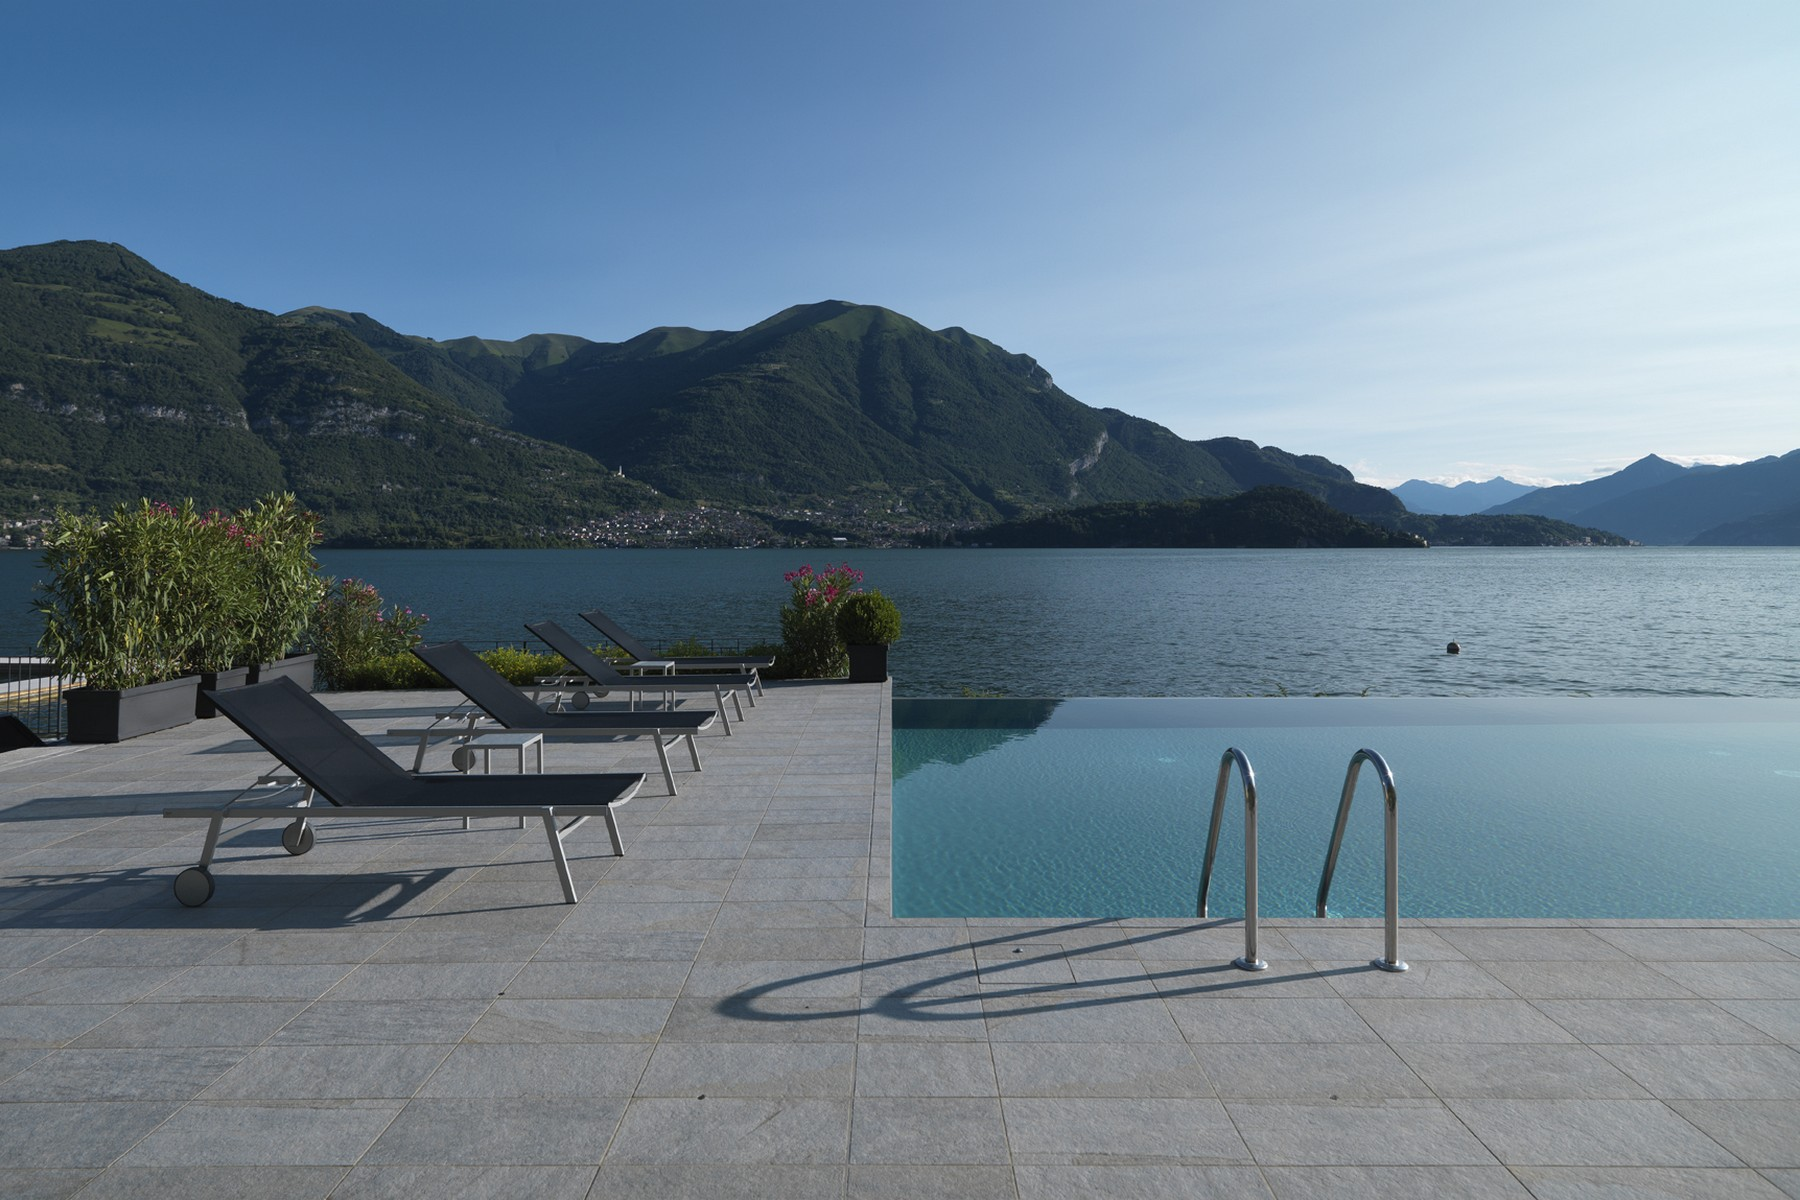 Maison unifamiliale pour l Vente à Splendid semi-independent villa directly on the lake Località Bagnana Lezzeno, Como 22025 Italie